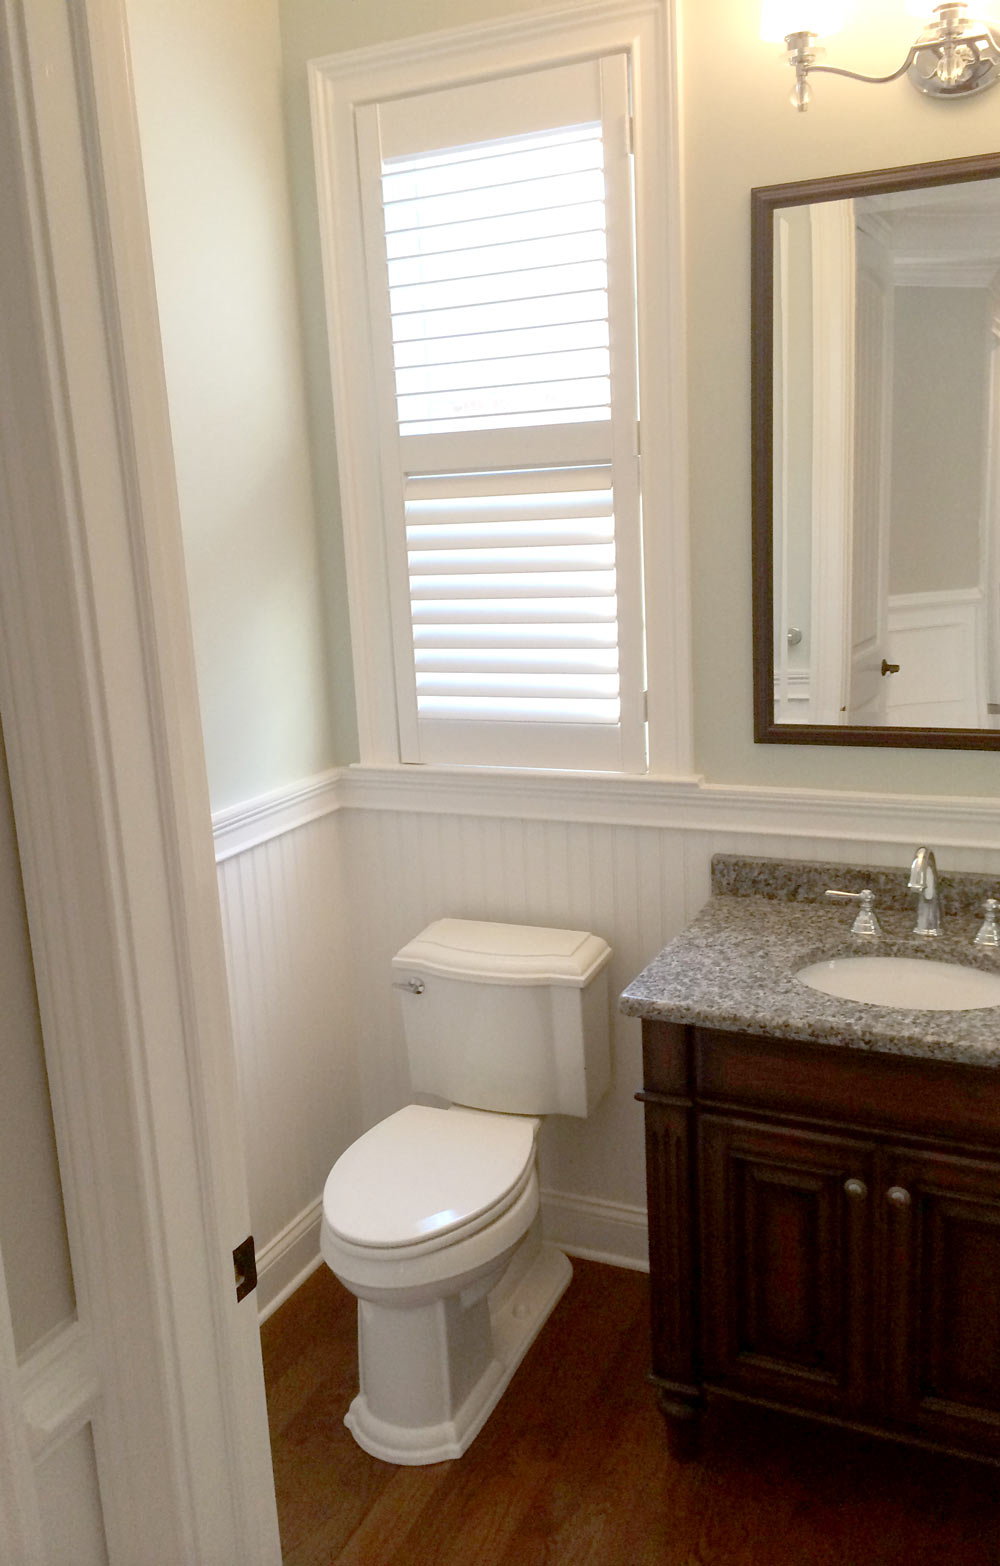 bathroom remodeling contractor in medford nj aj wehner